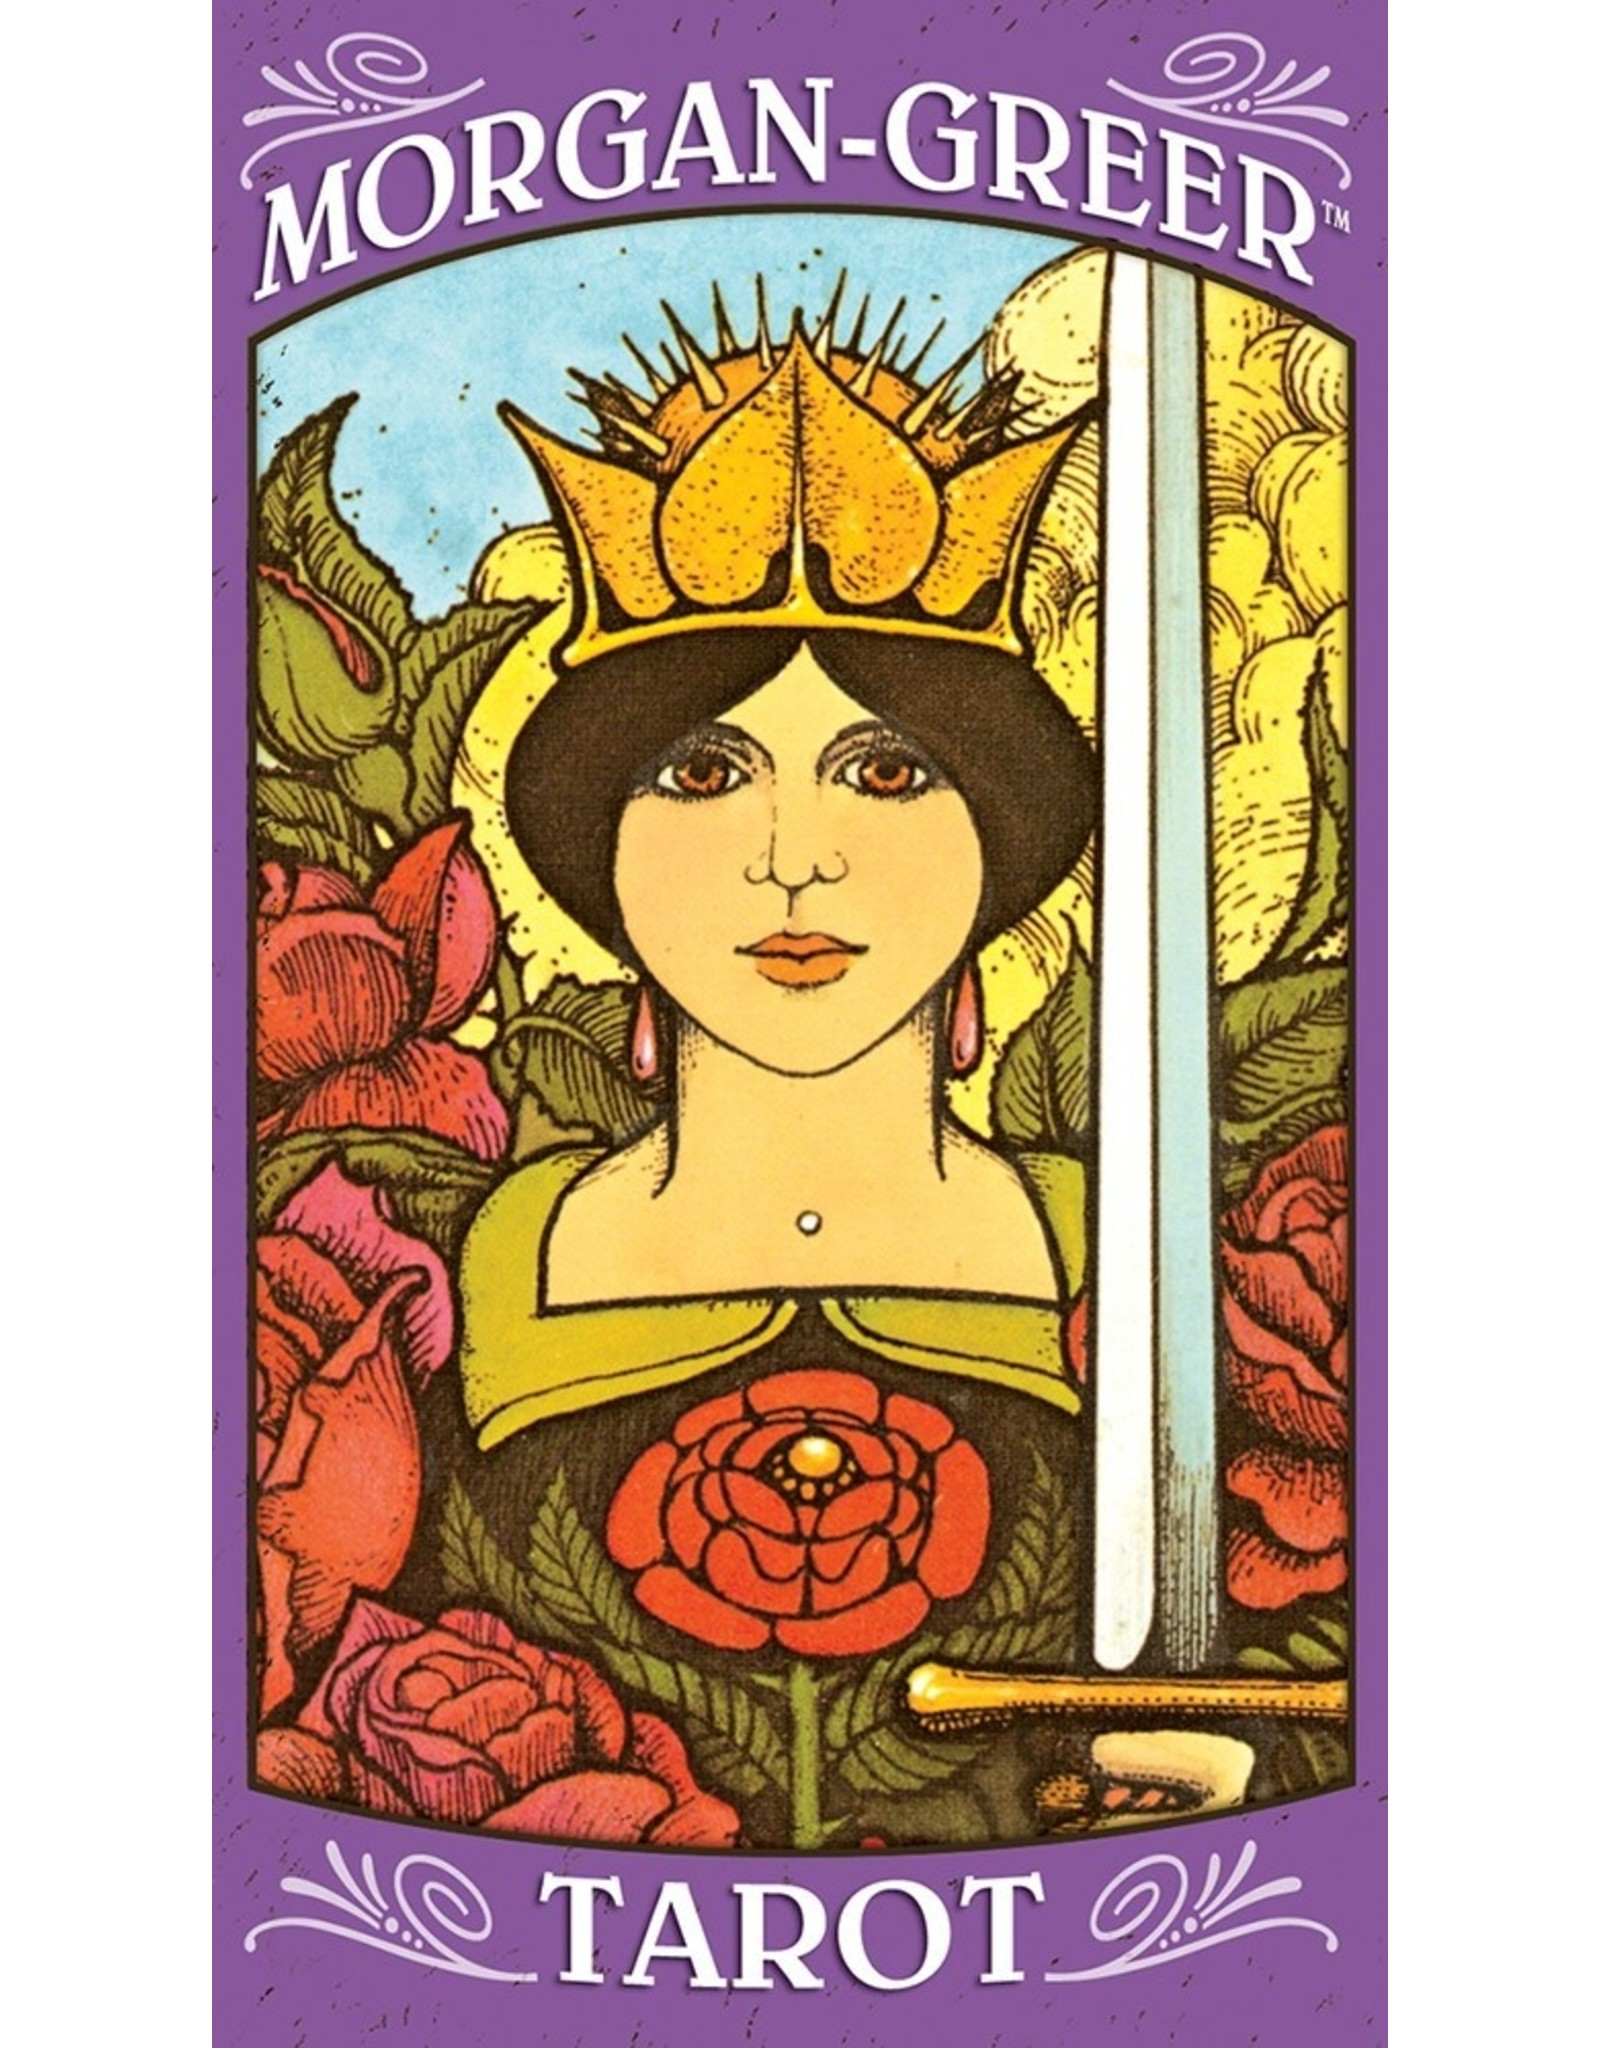 Morgan-Greer Tarot Deck